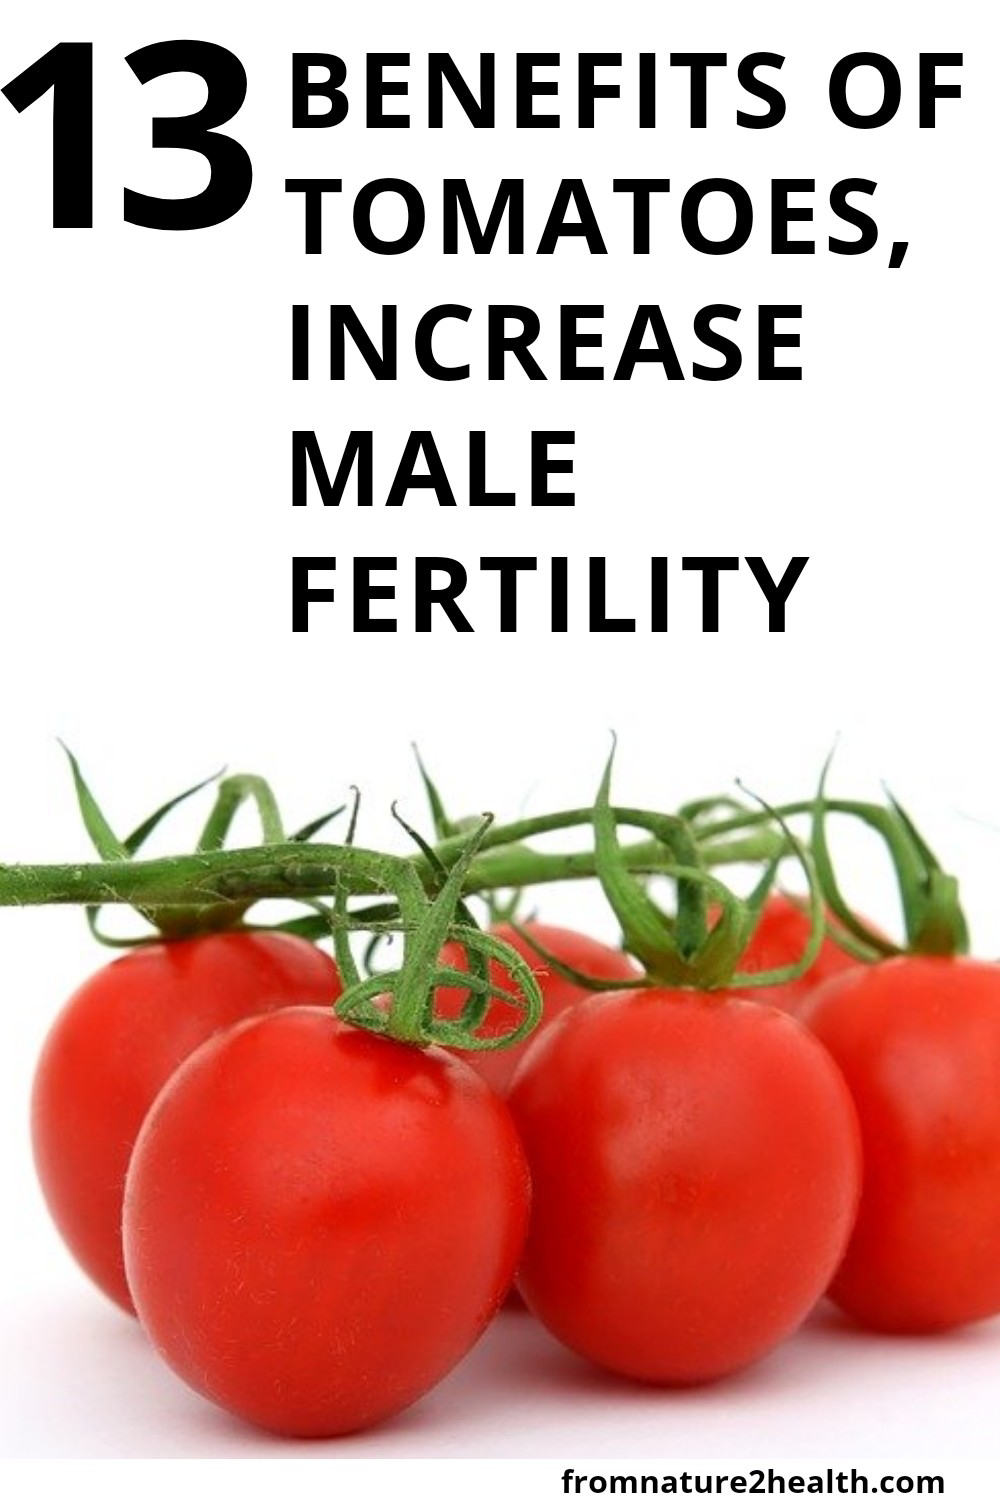 13 Benefits of Tomatoes, Increase Male Fertility, prevent cancer, treat diabetes, for diet